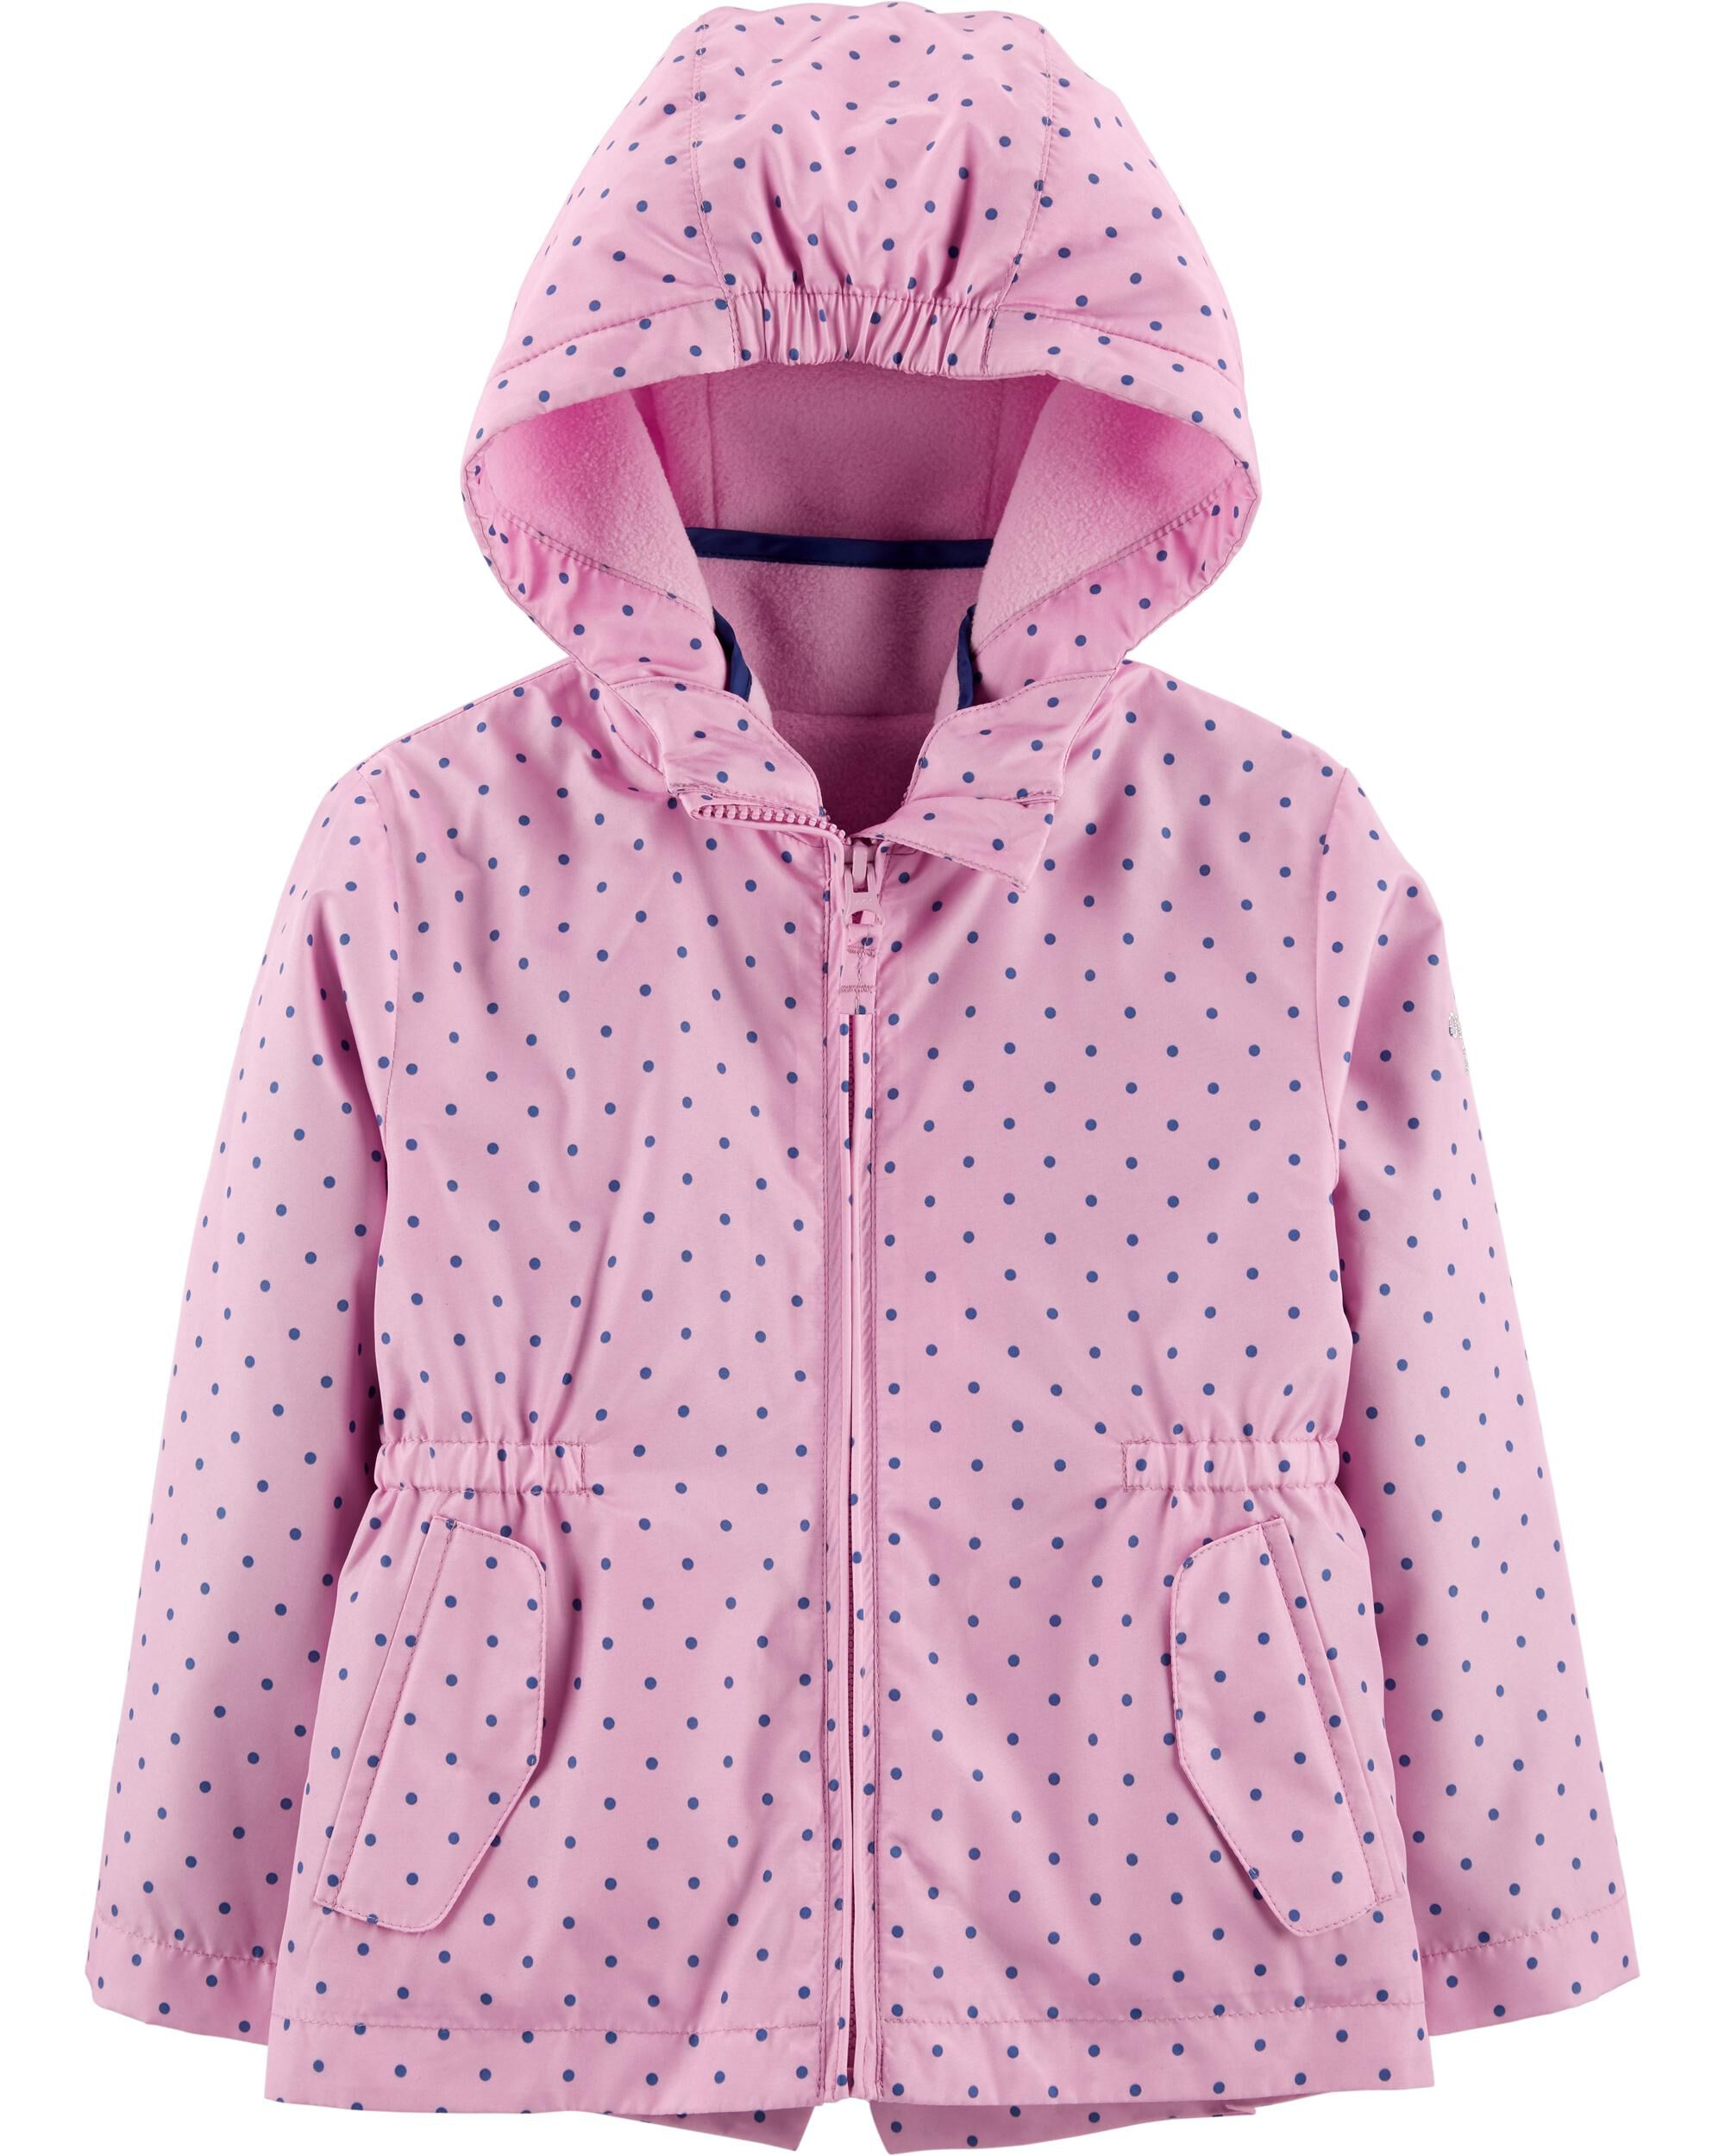 Baby Girls Purple Pink Padded Fleece Coat Jacket Size 18-24 2 Years Excellent Outerwear